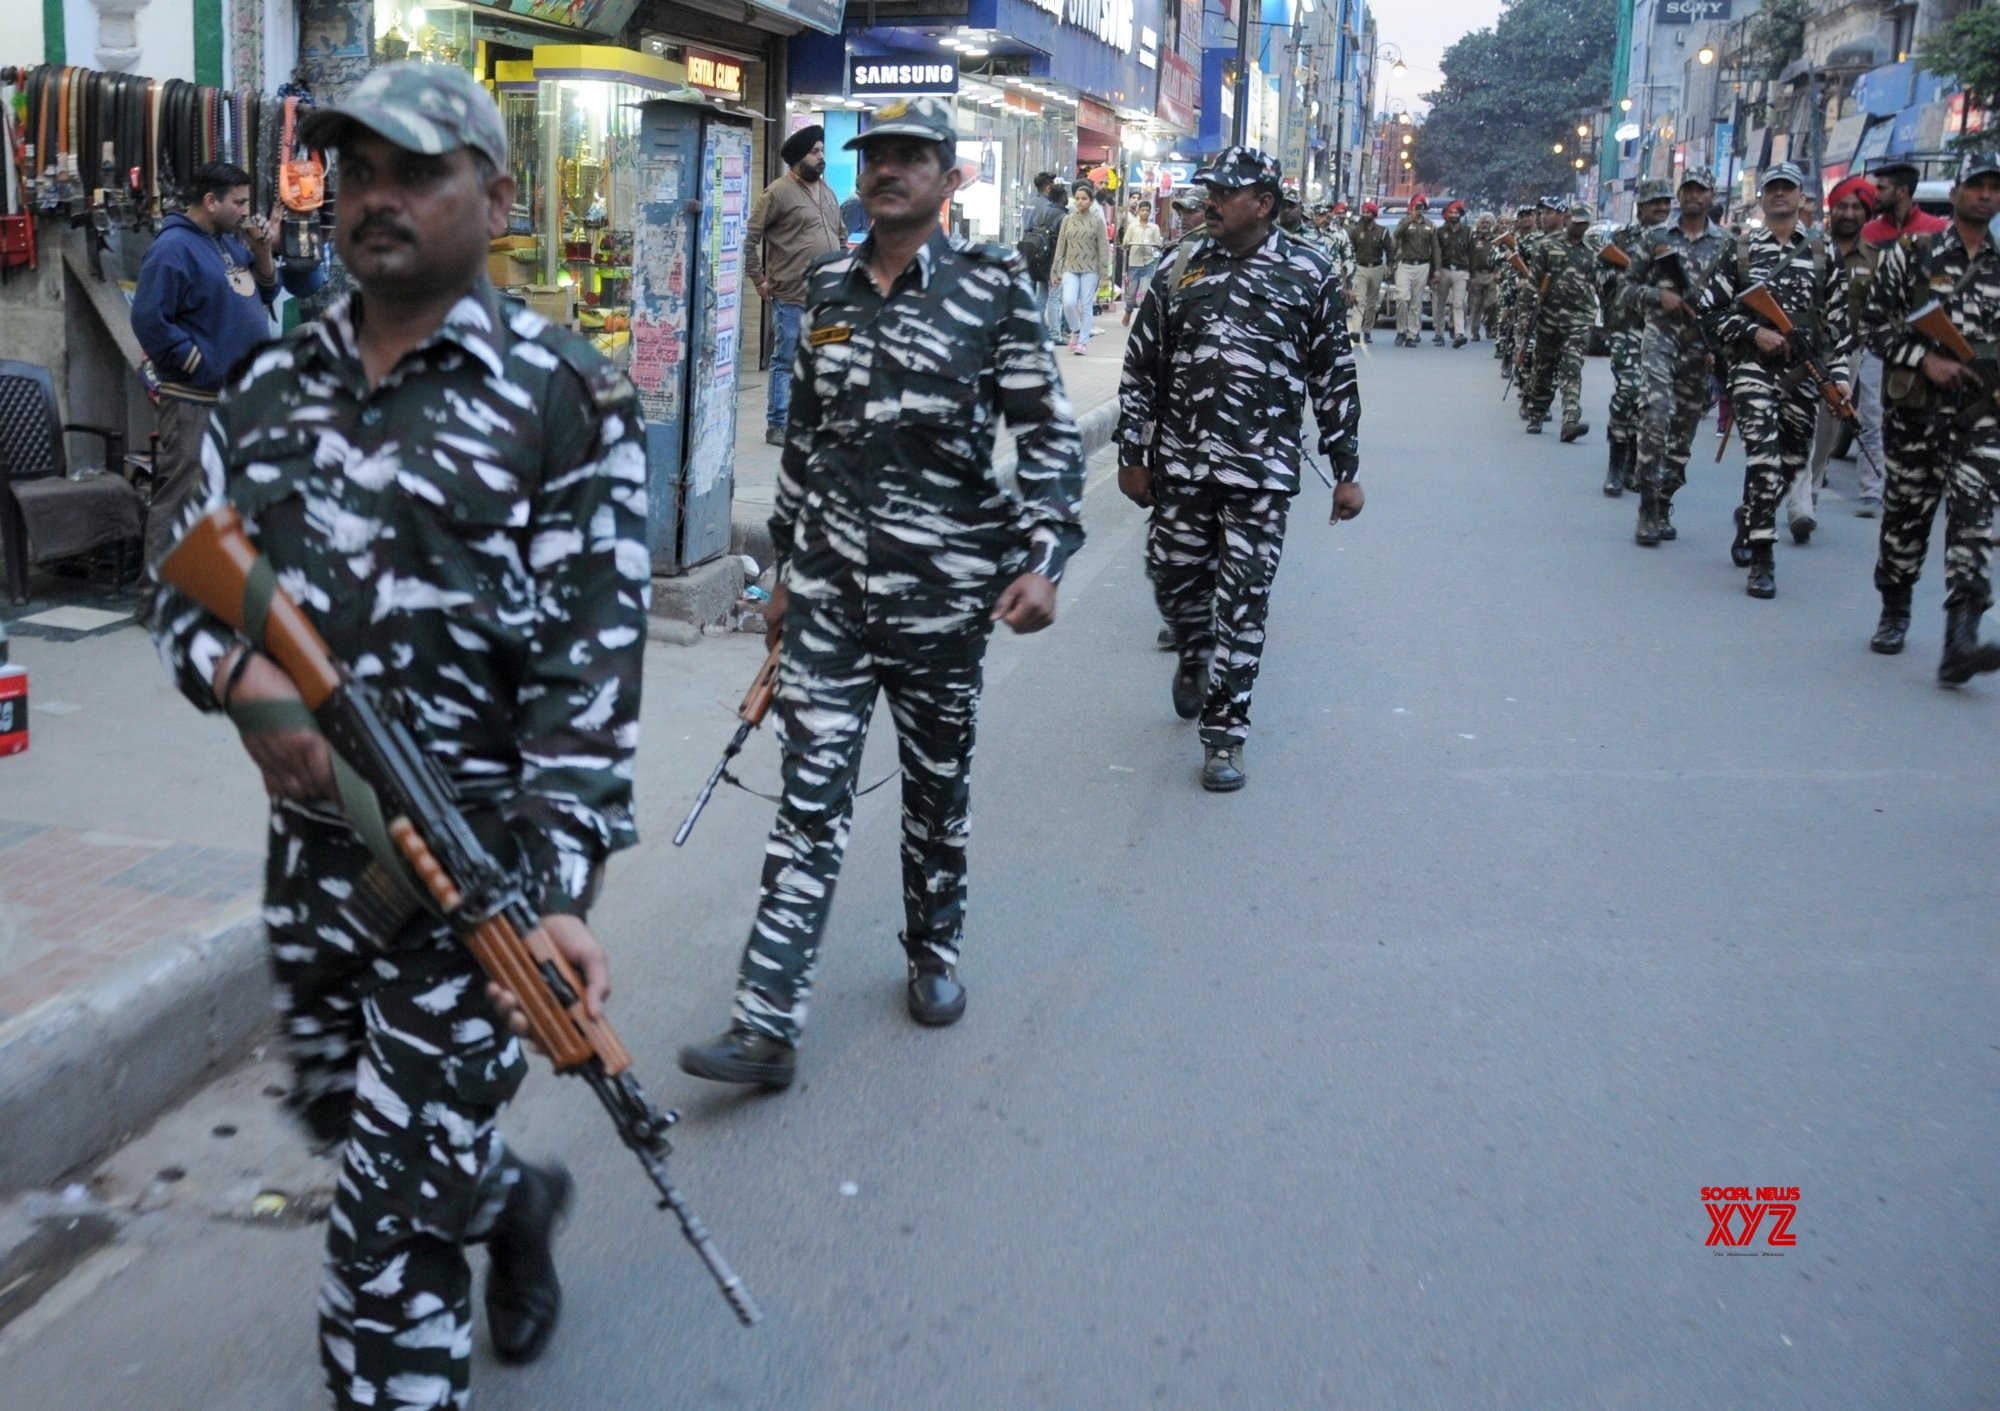 Amritsar: 2019 Lok Sabha elections - Paramilitary Forces, police conduct flag march #Gallery